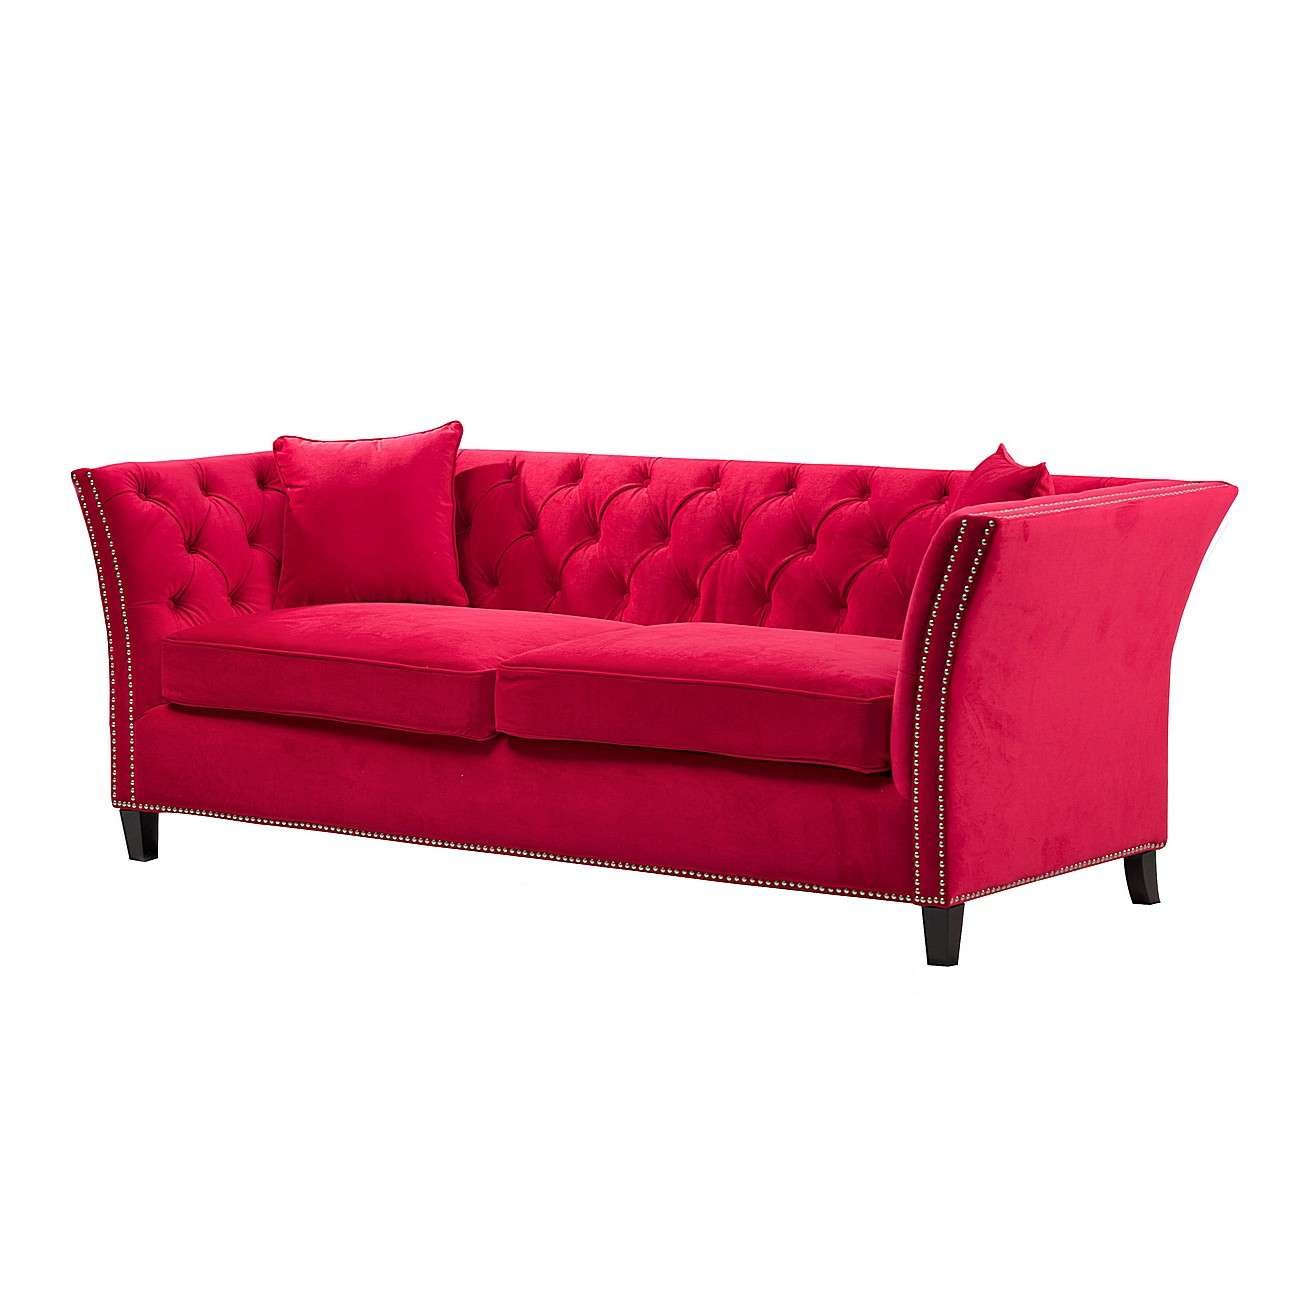 sofa chesterfield modern velvet raspberry red 3 os 225x87x82cm dekoria. Black Bedroom Furniture Sets. Home Design Ideas